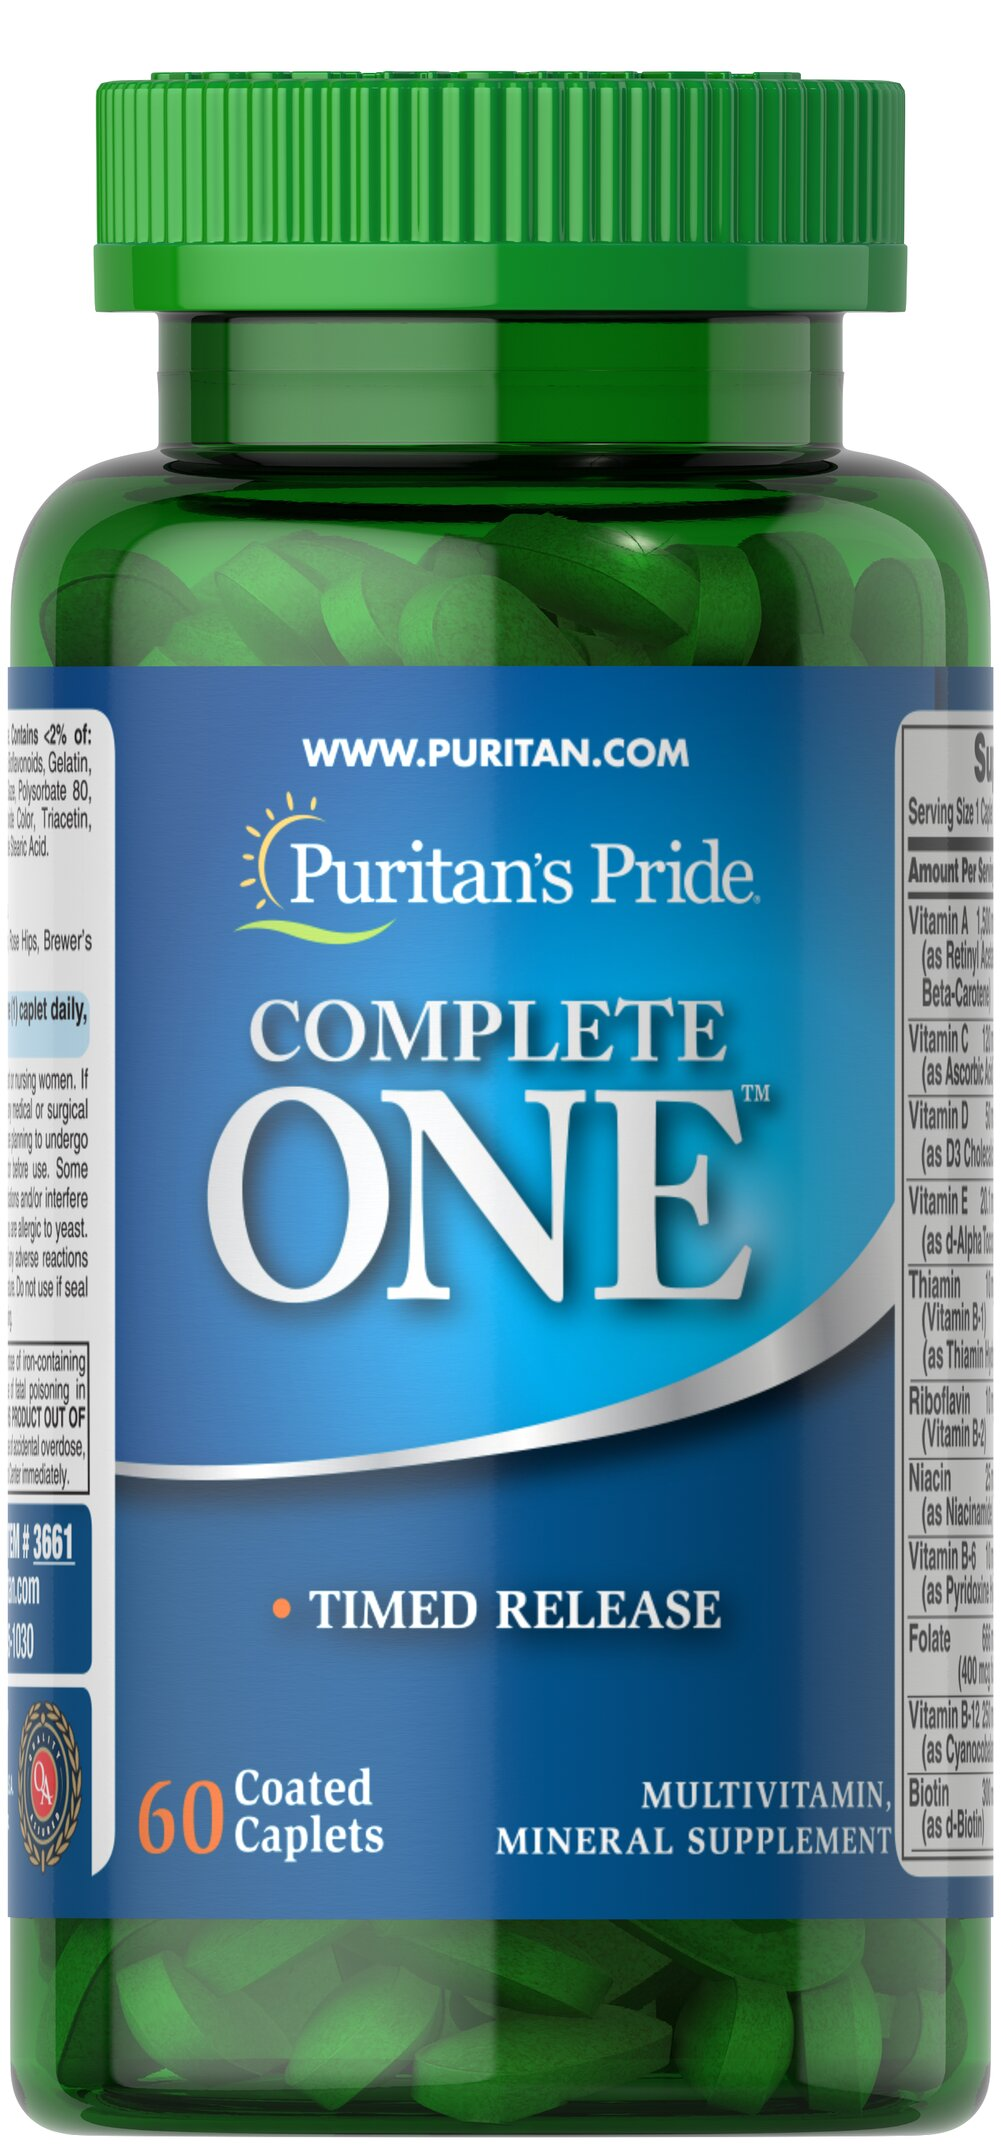 Puritan's Pride One™ Multivitamins Timed Release <p>Special multivitamins formula with beta-carotene. Each easy-to-swallow tablet provides: 28 essential nutrients, long acting B-Complex and C Vitamins, plus 13 Essential Minerals including Chromium, Selenium and Zinc.</p> 60 Tablets  $12.99